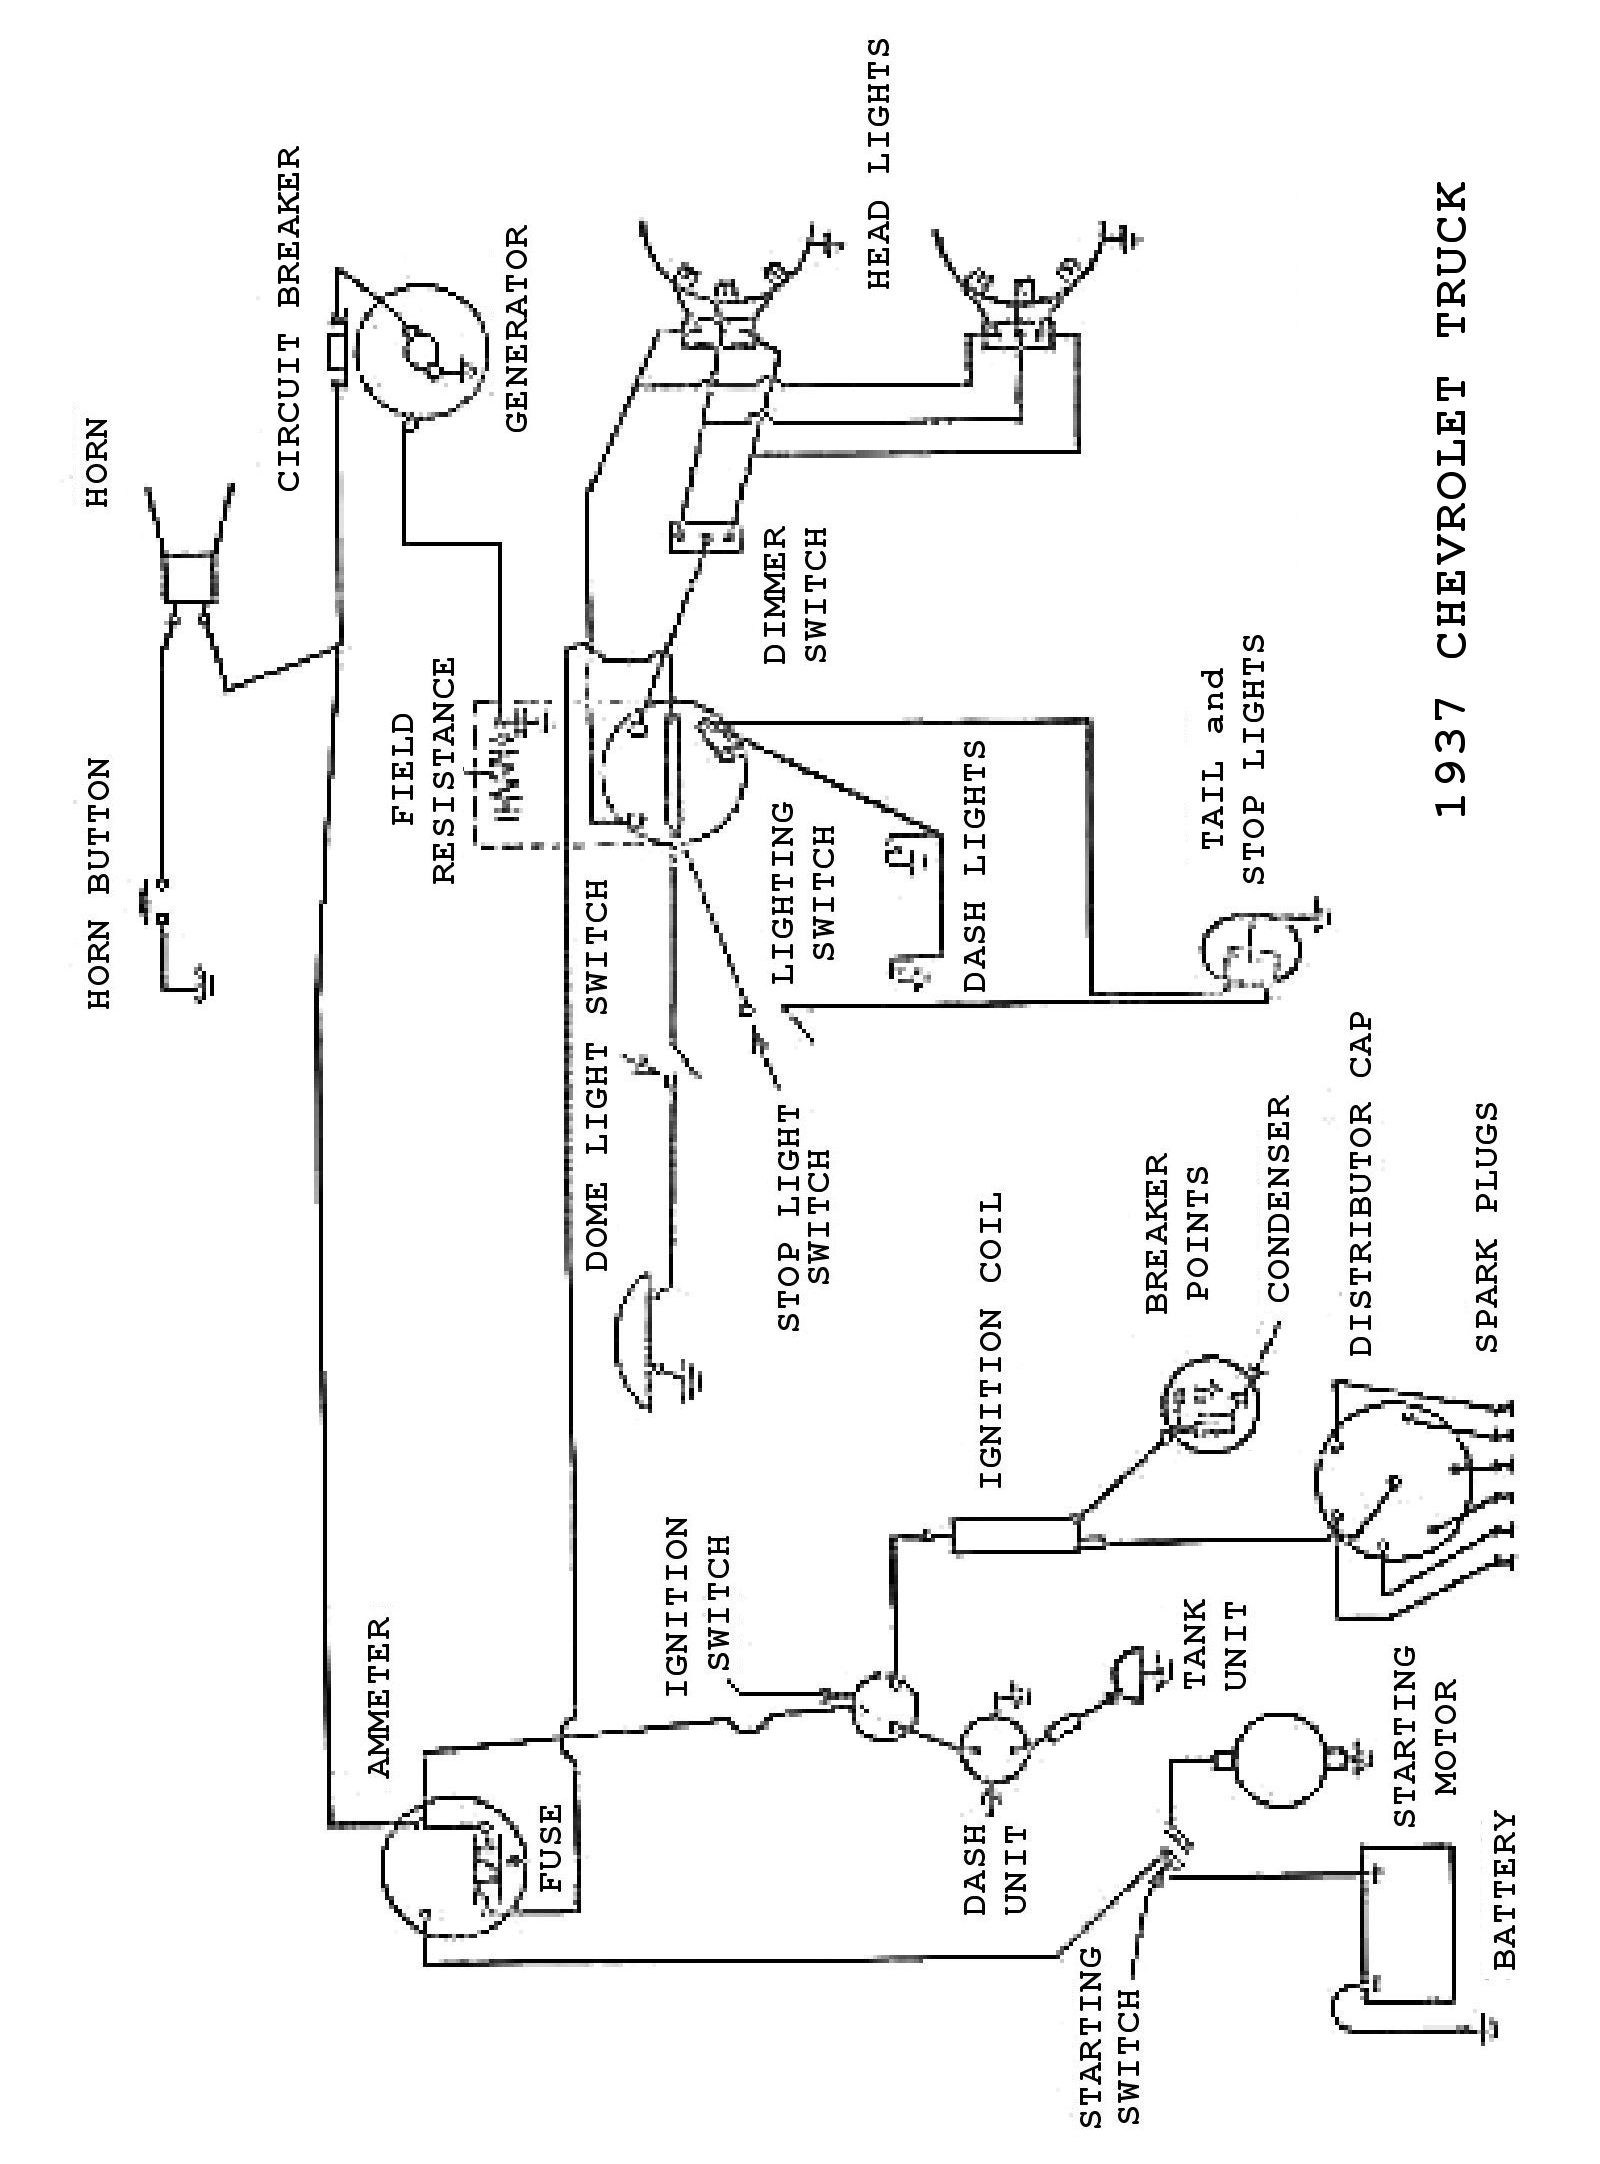 1937 chevrolet wiring diagram example electrical wiring diagram u2022 rh olkha co